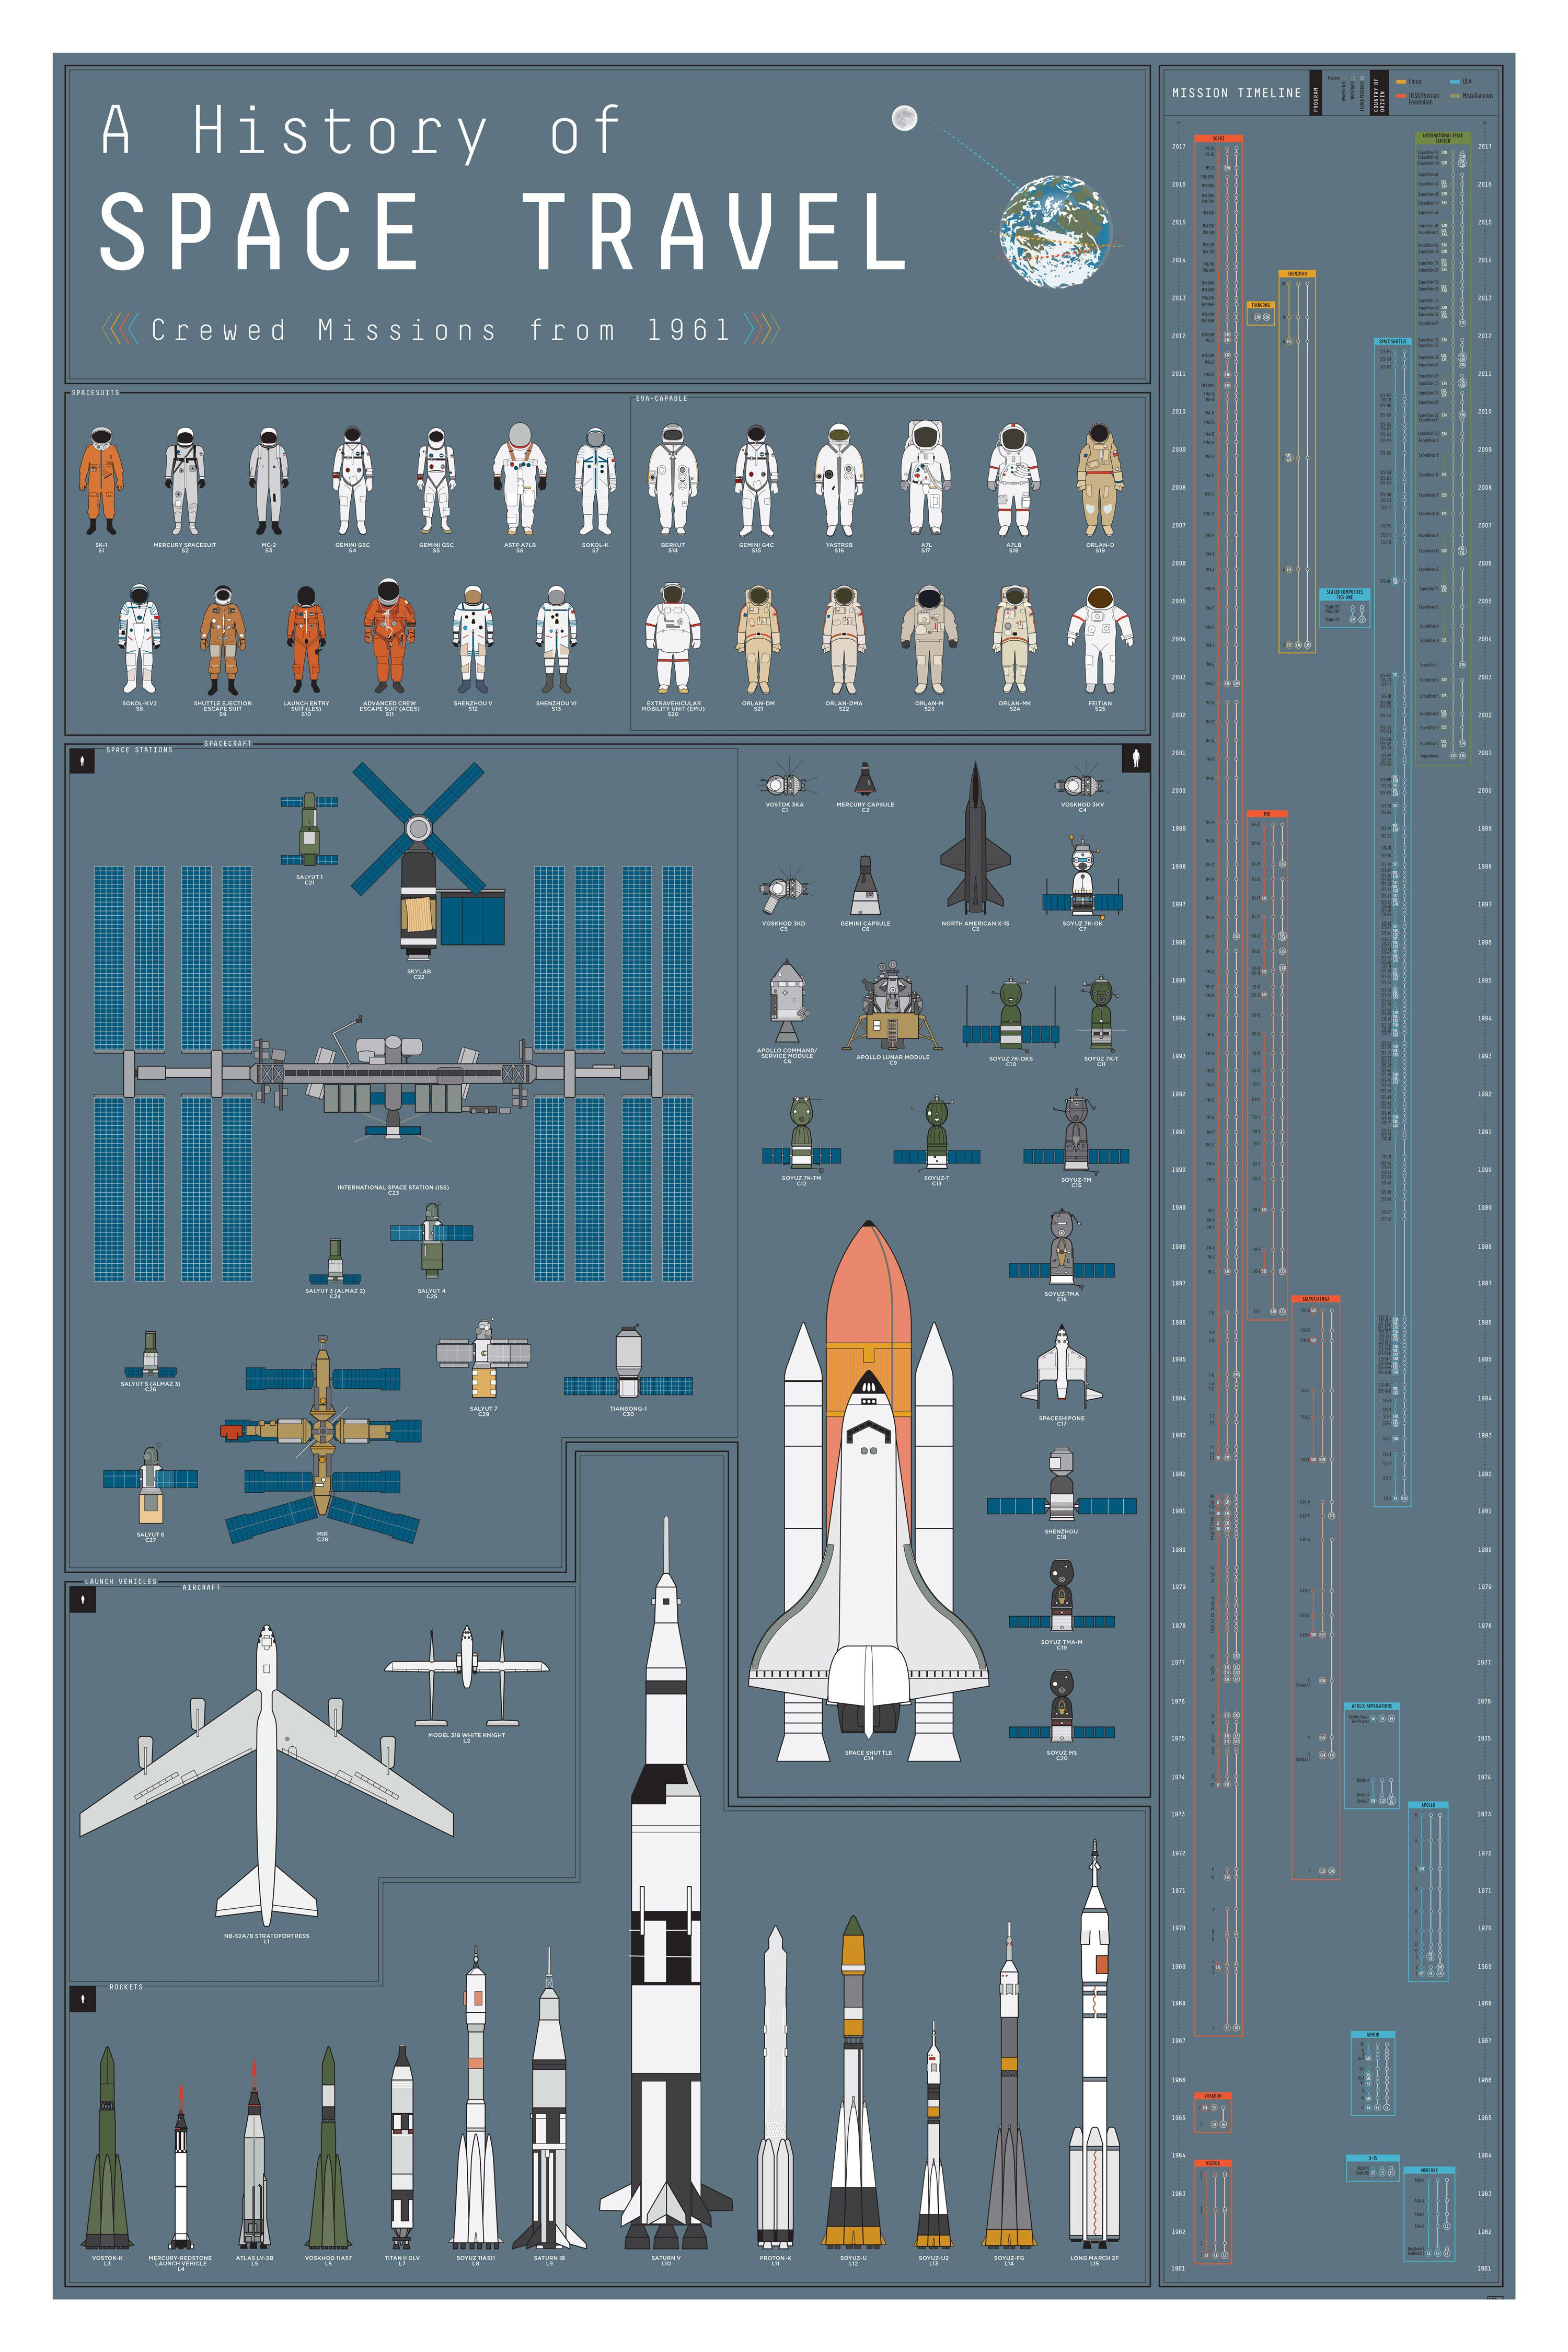 Pin by Jen Collins on History | Space map, Space travel ...